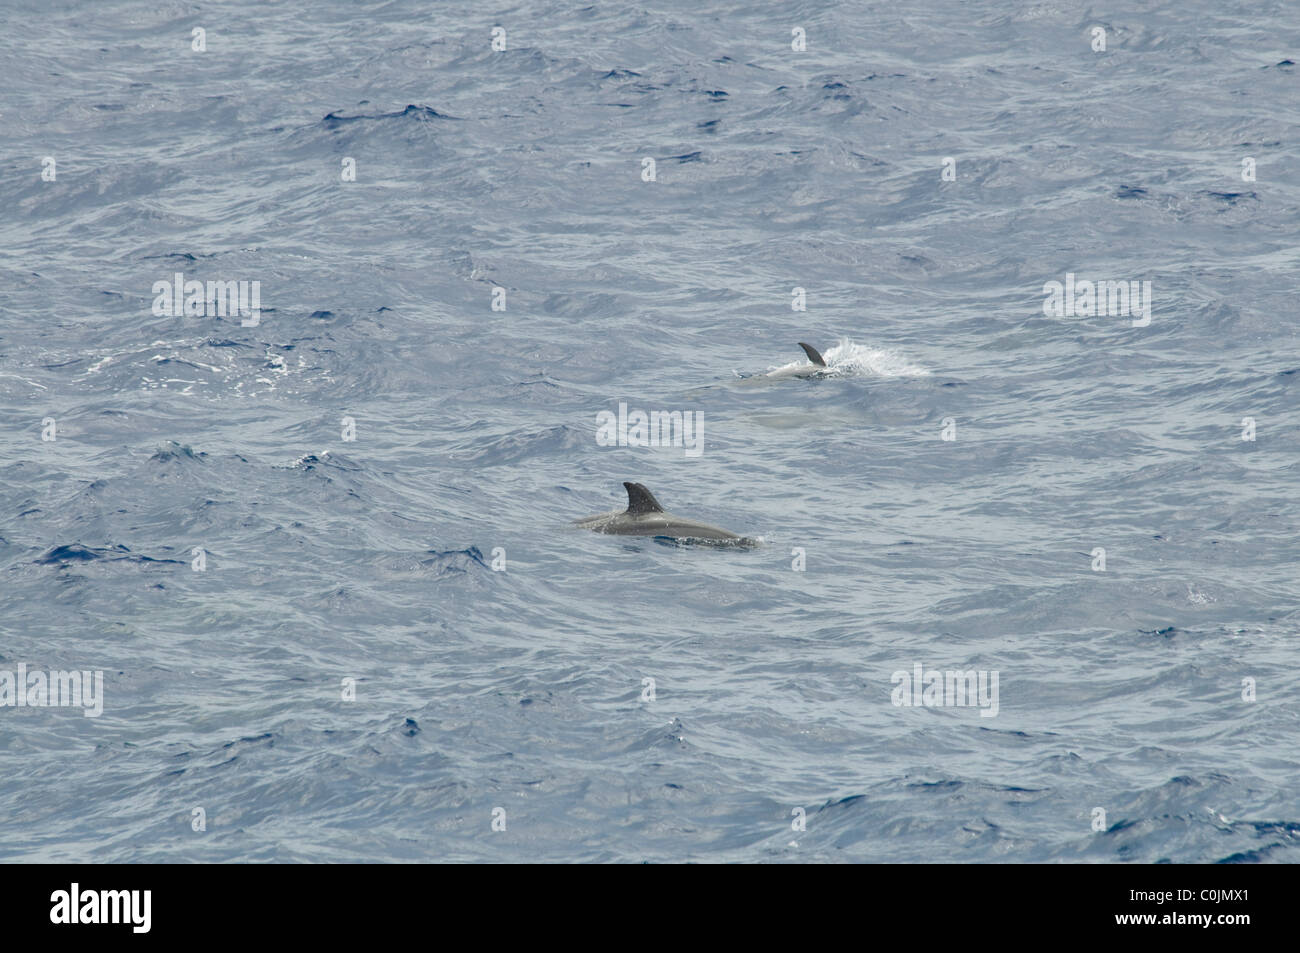 Spinner Dolphins are common near the shores of the Pacific Islands.  Delfine schwimmen häufig an den Küsten - Stock Image